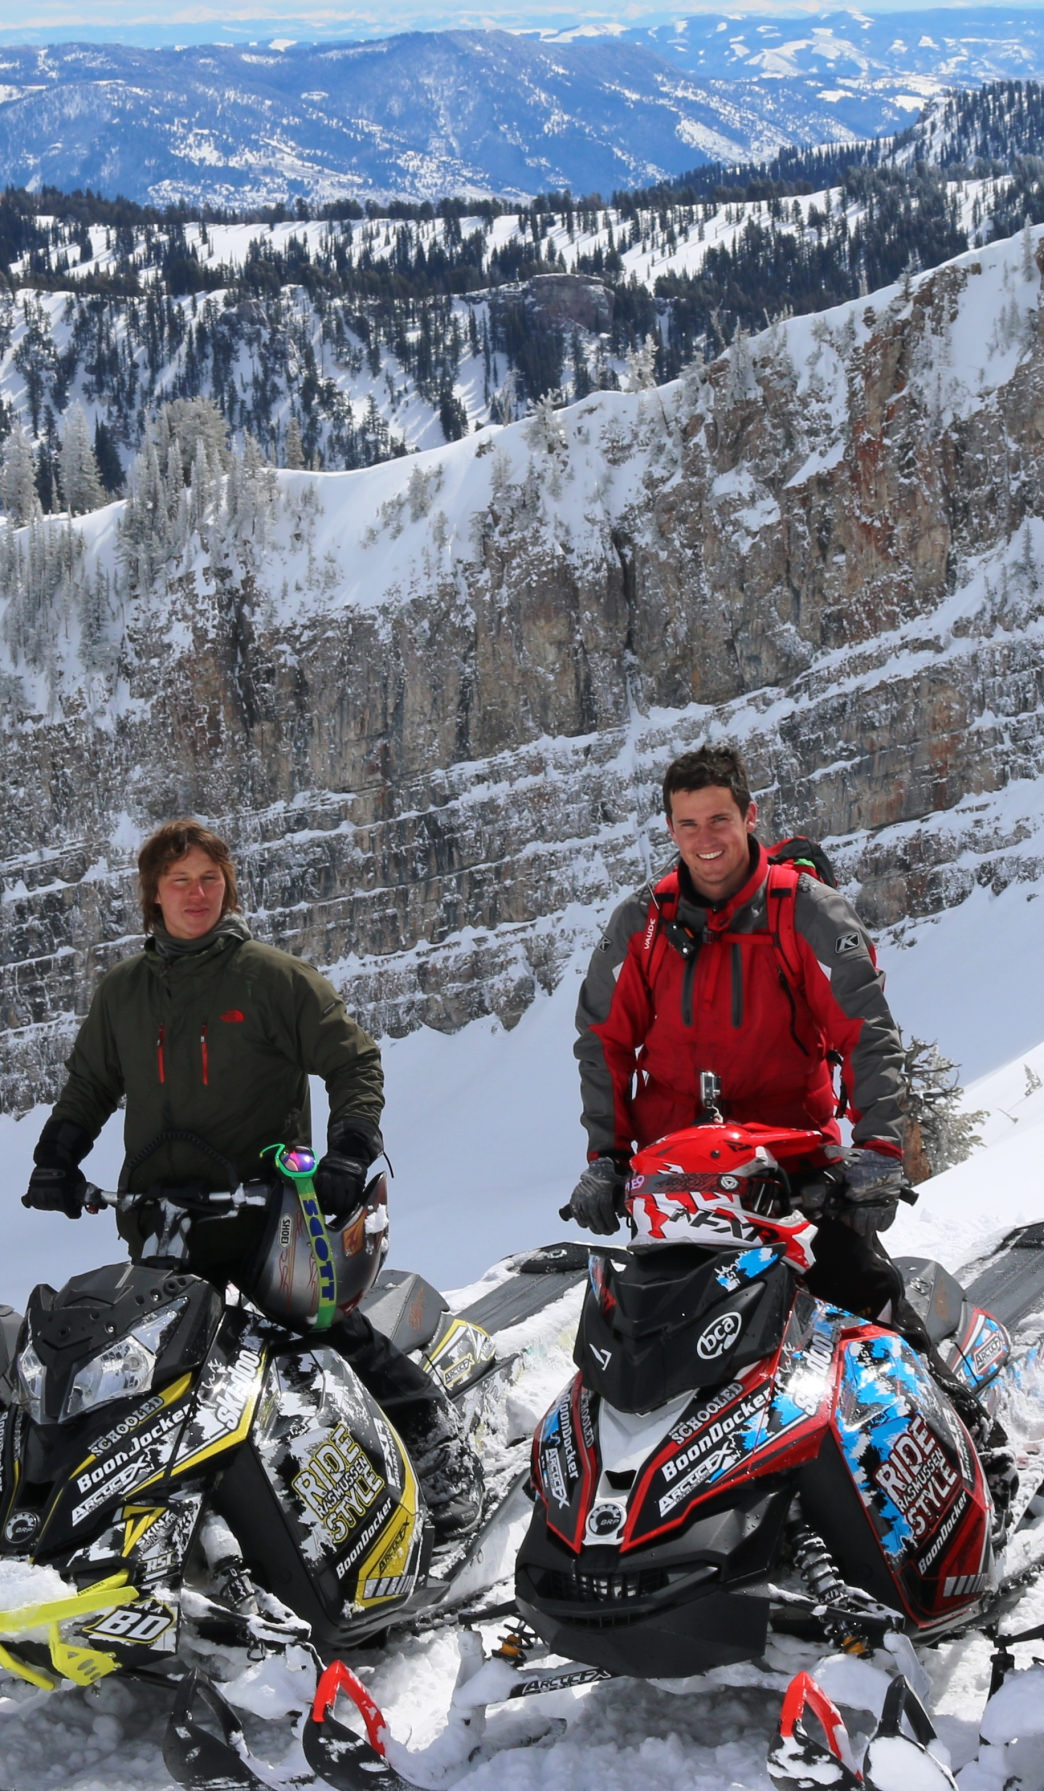 Rent snowmobiles at Beaver Creek Lodge to explore the Bear River Range.